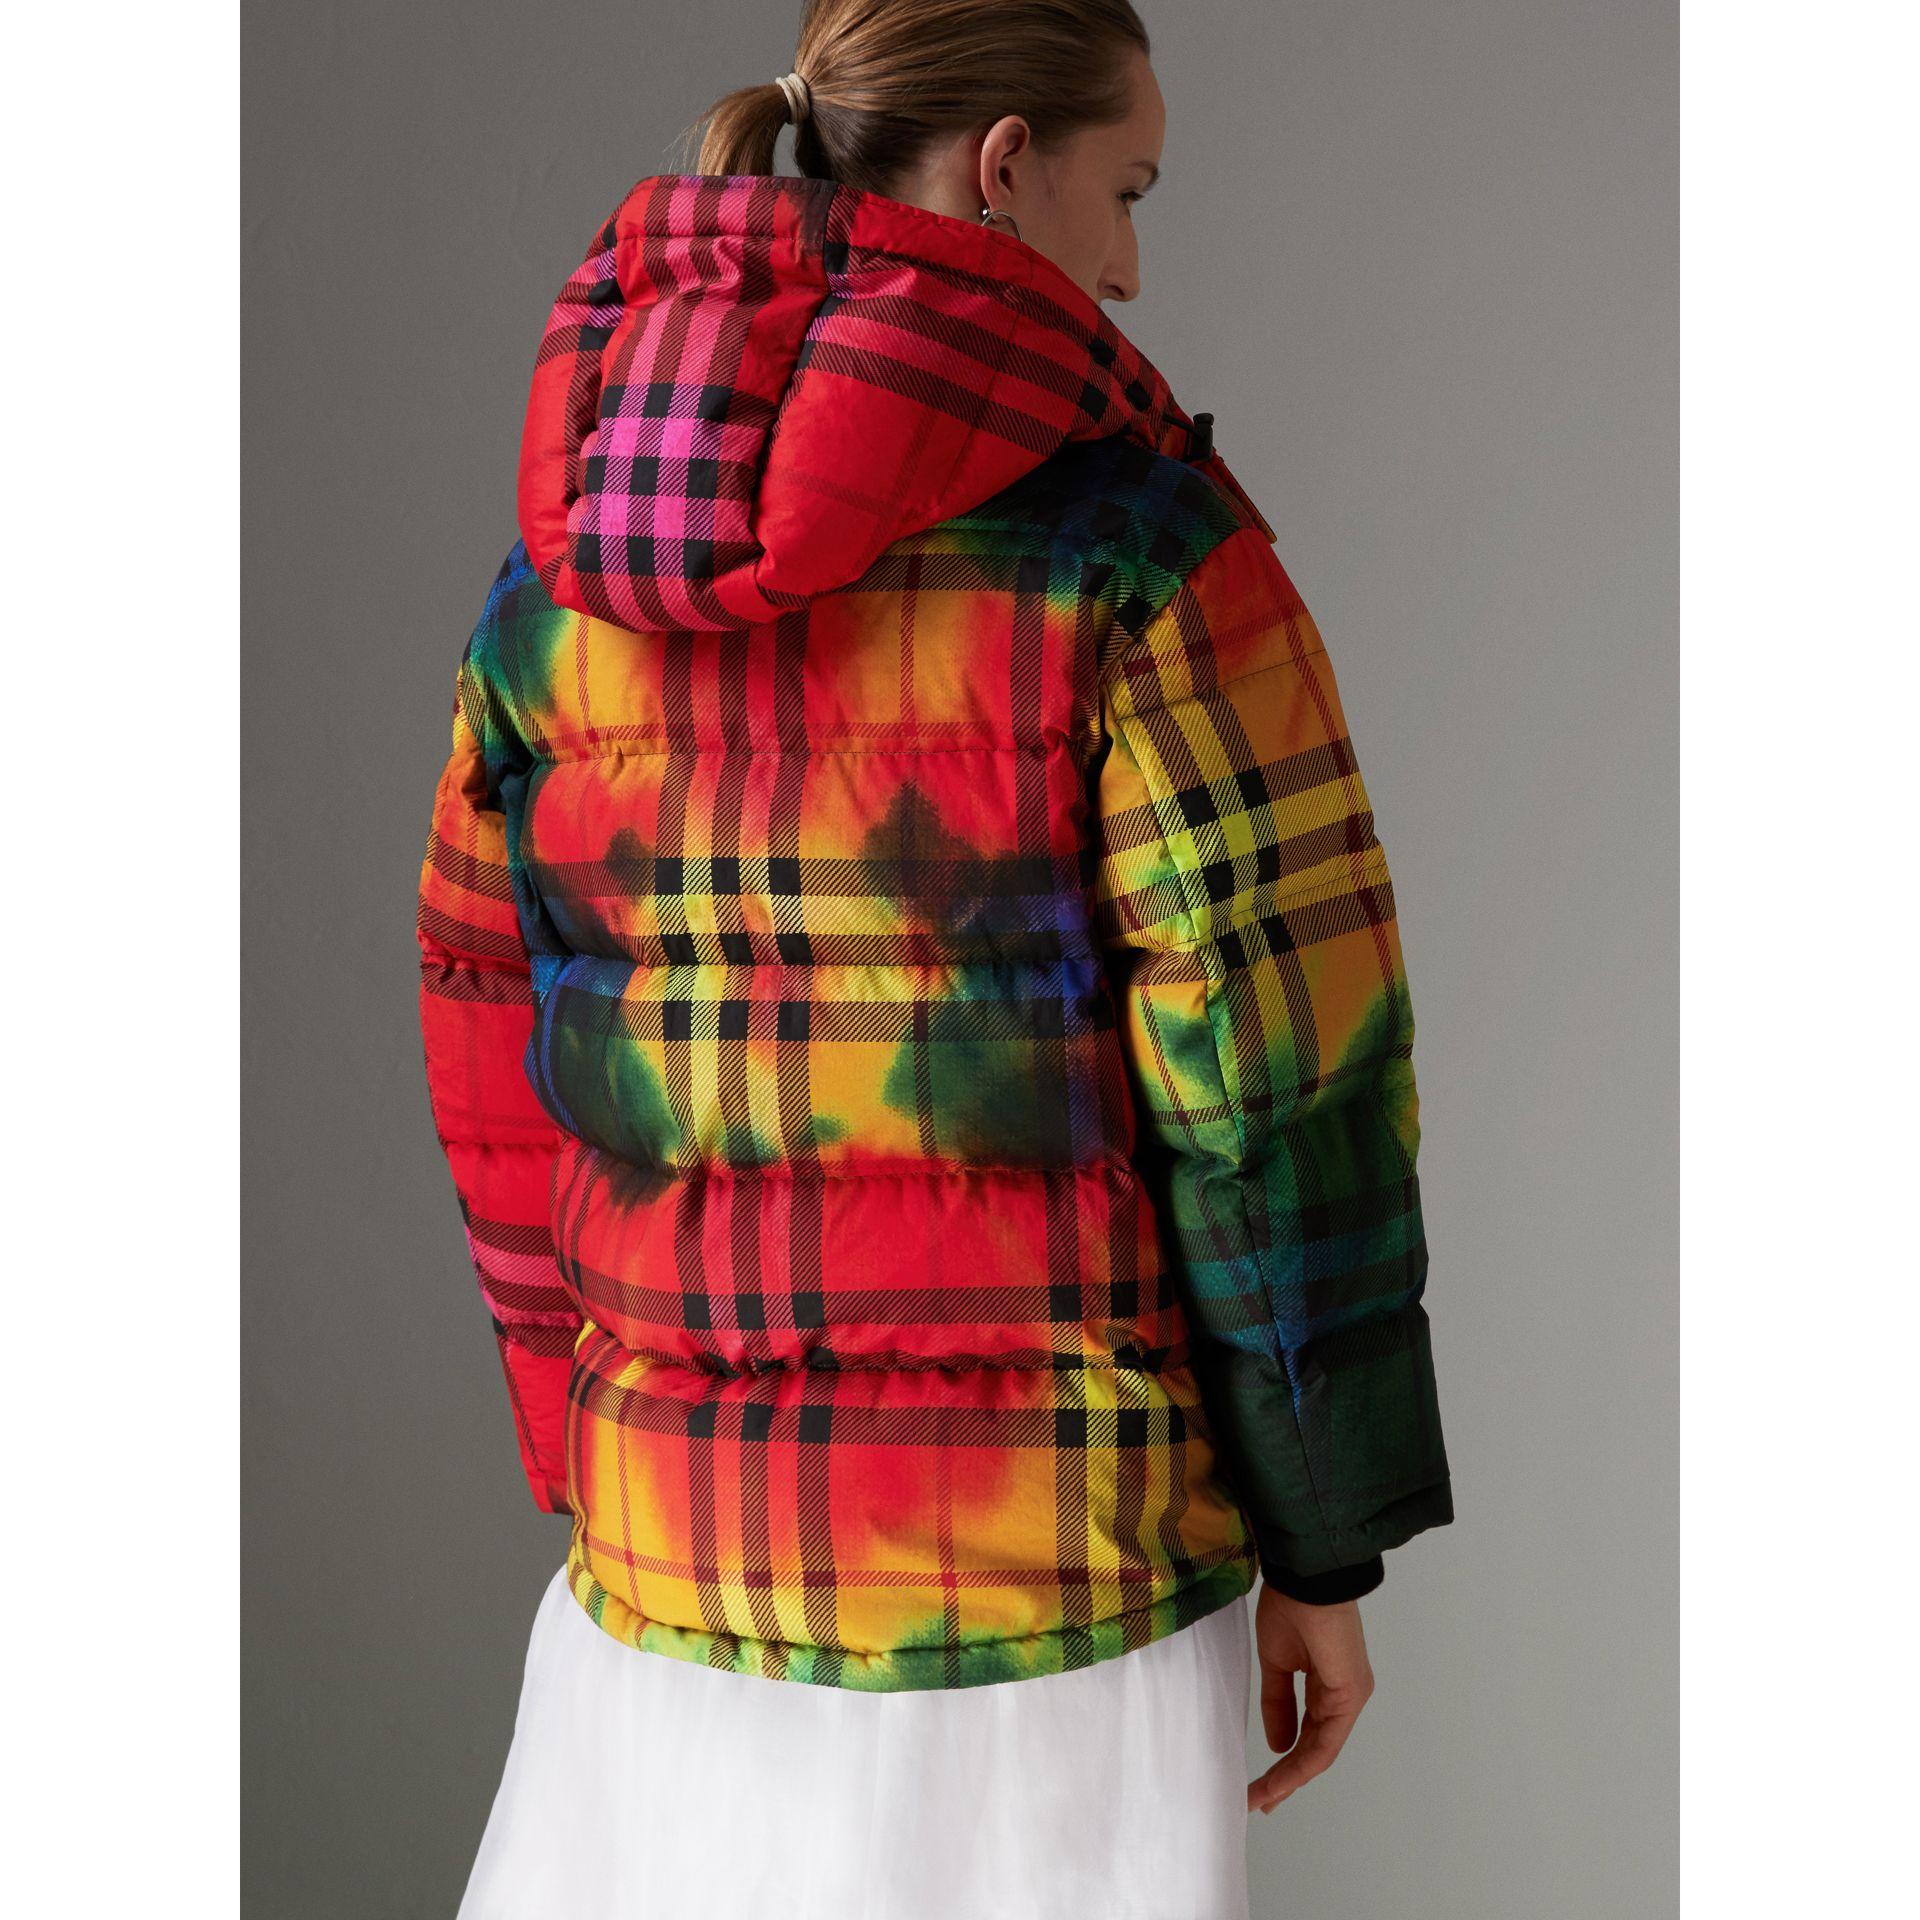 Tie-dye Print Vintage Check Puffer Jacket in Multicolour - Women | Burberry - gallery image 2